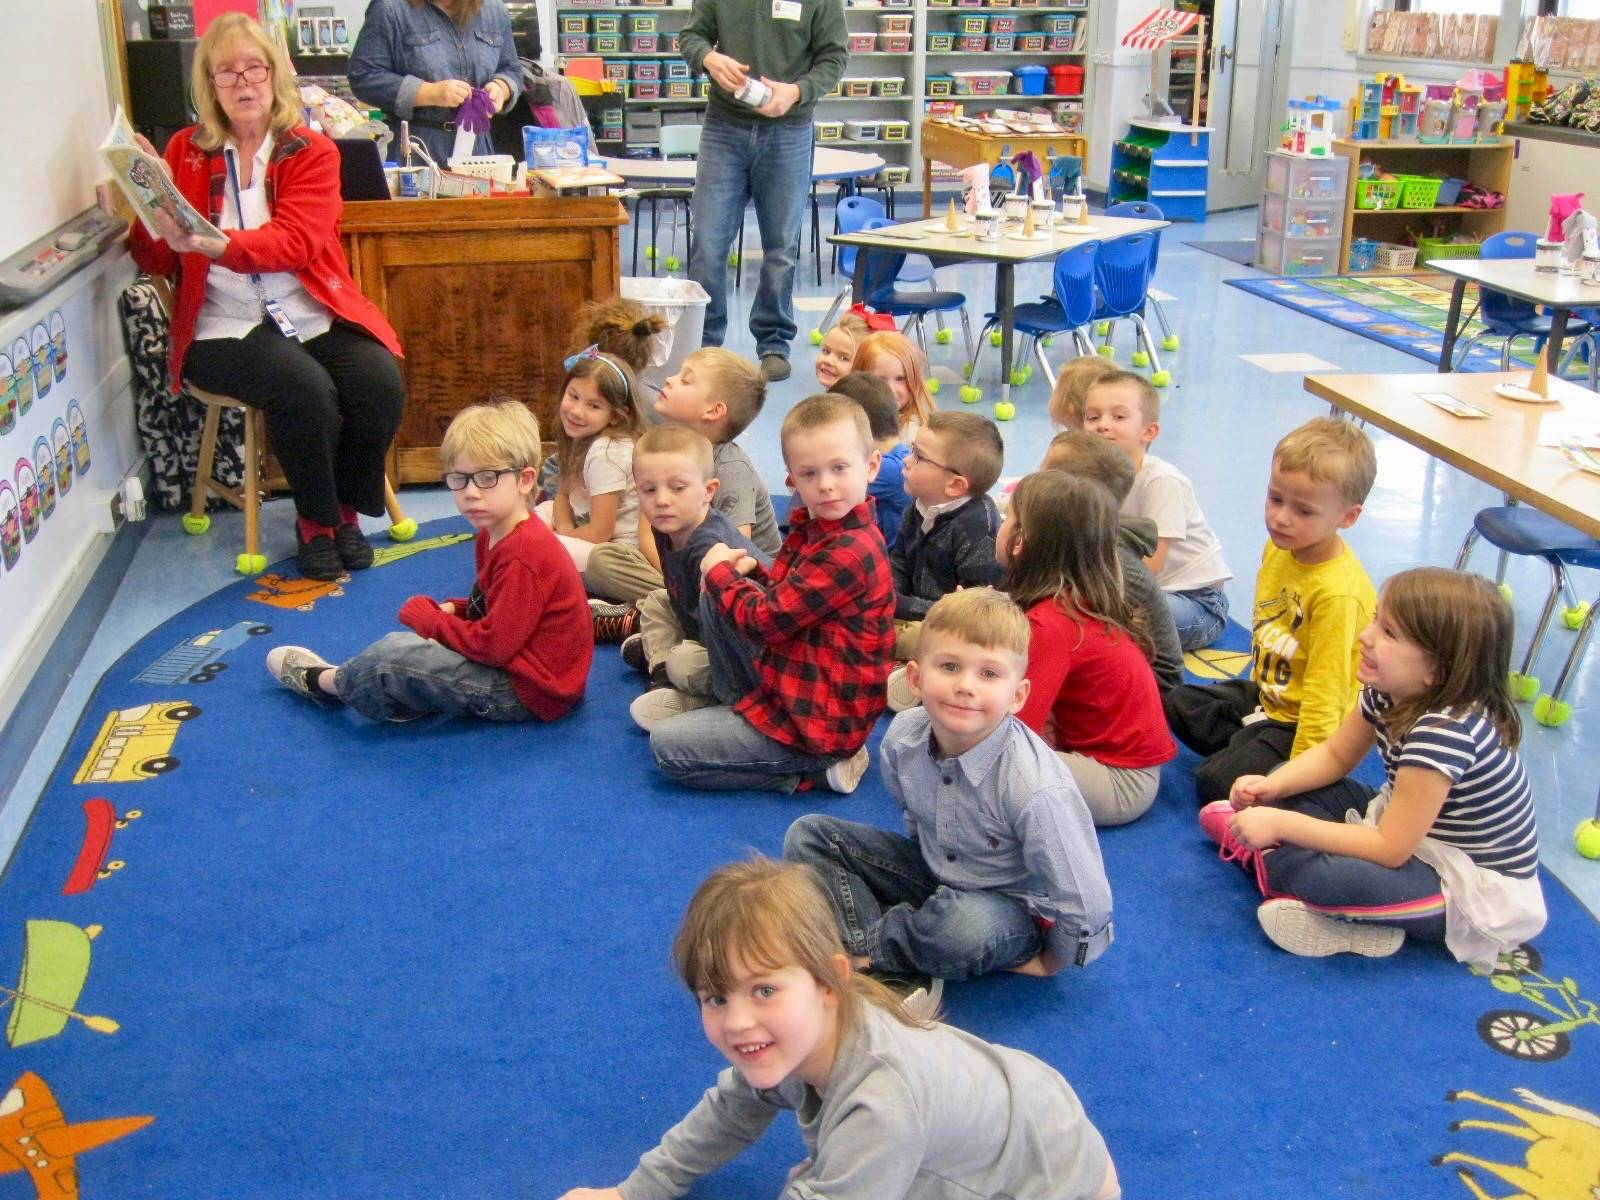 A staff member reads to children.